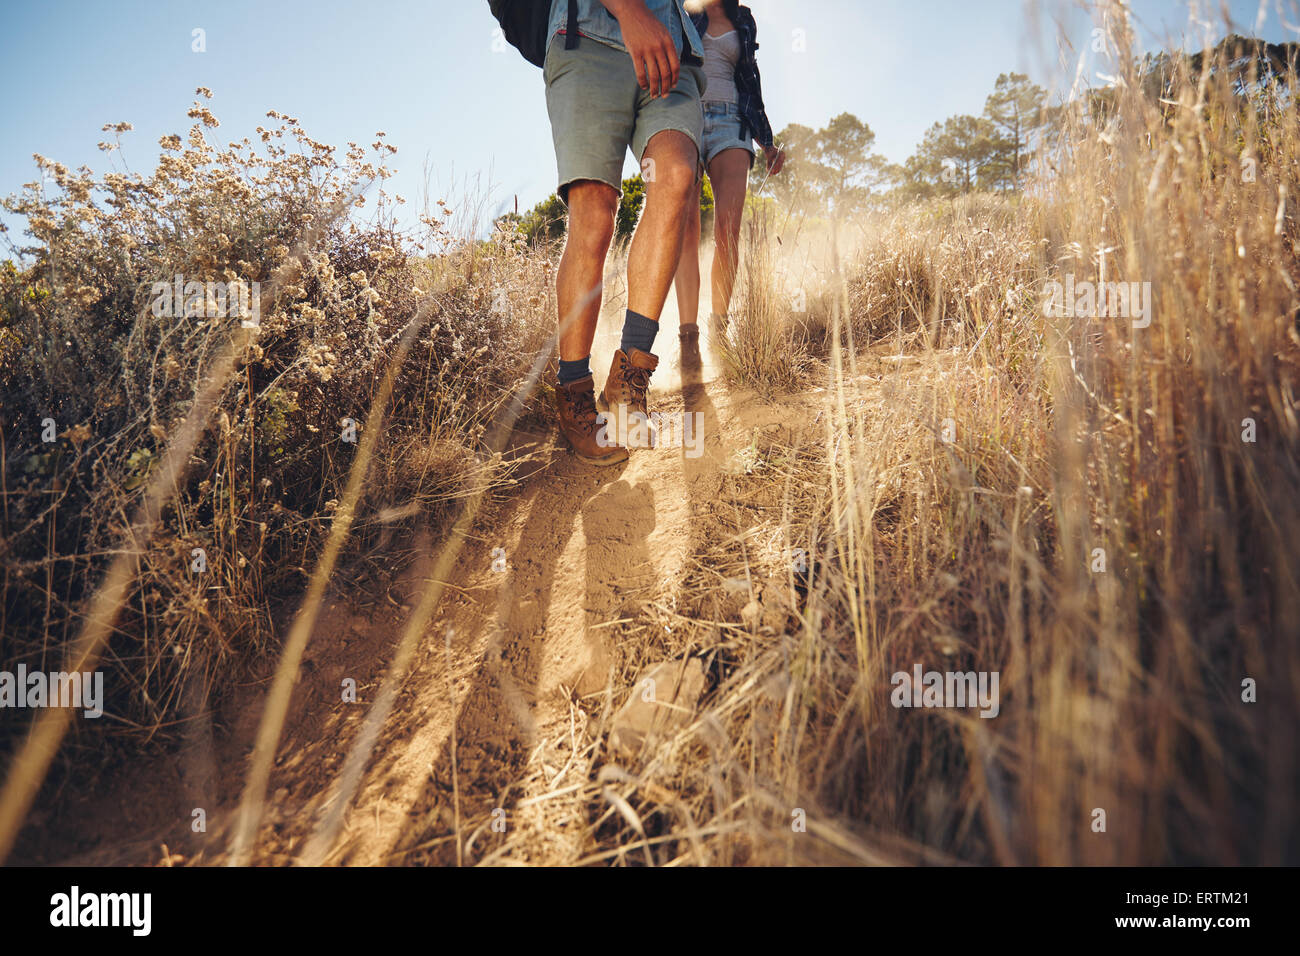 Low angle view of young couple walking on country trail path. Couple hiking on mountain coming downhill. Cropped - Stock Image